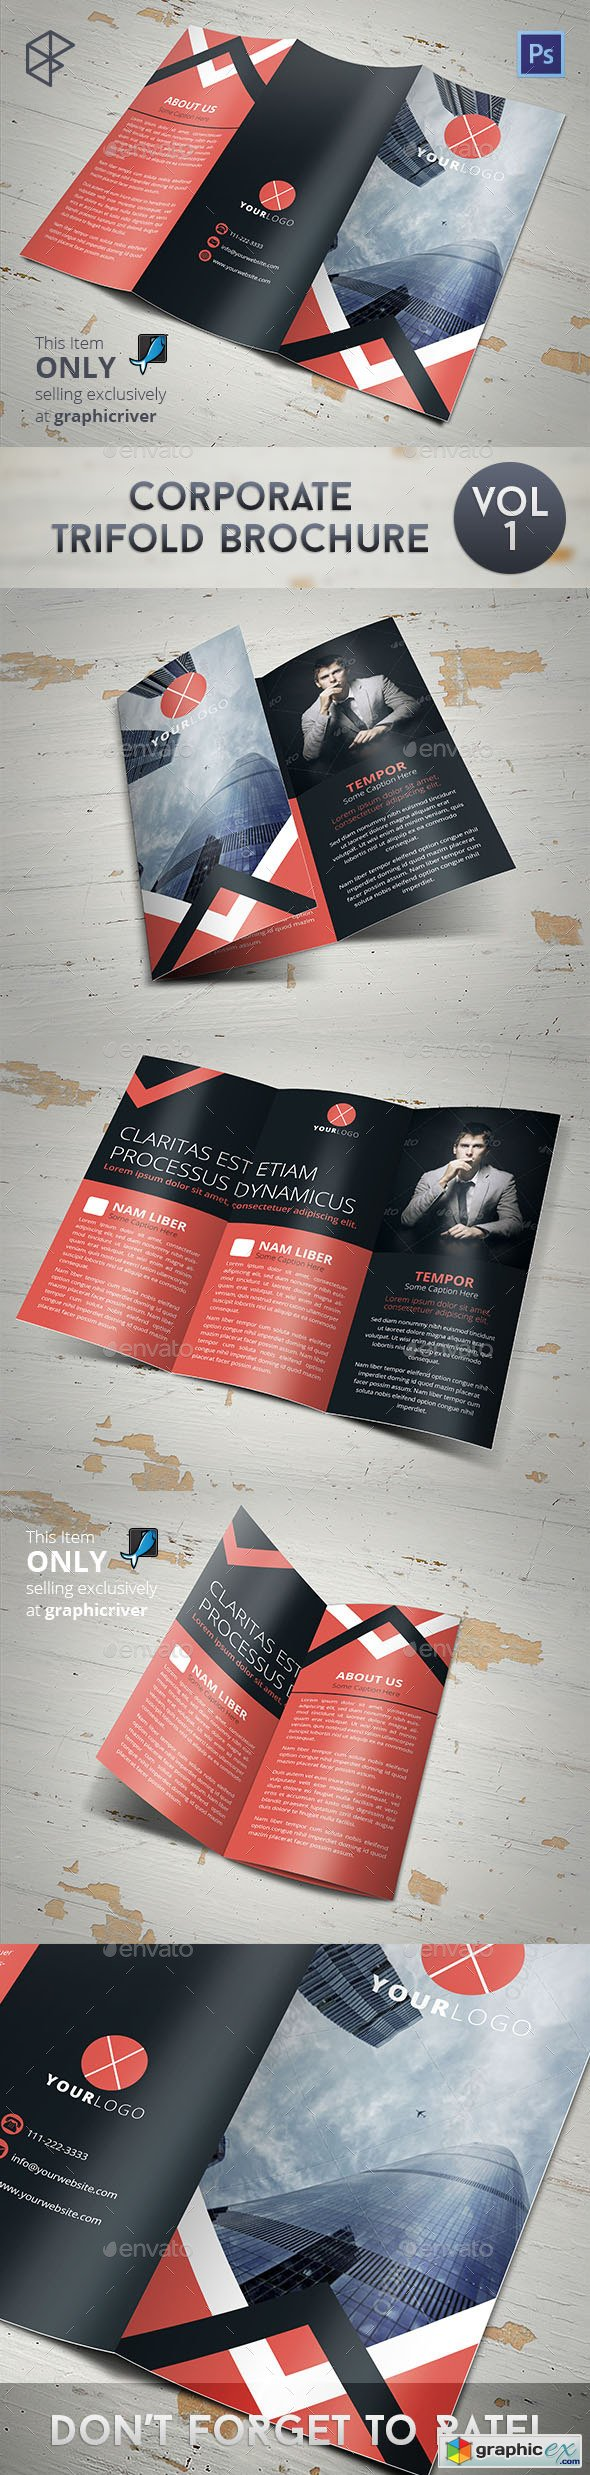 Corporate Trifold Brochure 7829117